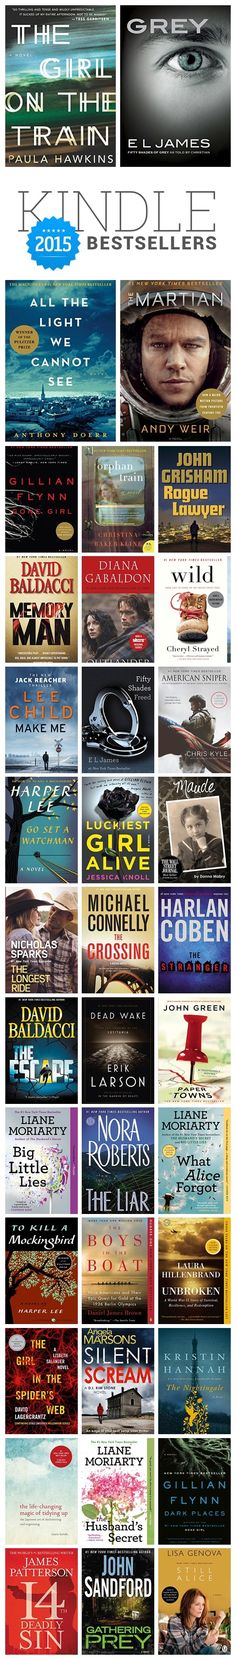 Paula Hawkins, Harper Lee, Anthony Doerr, Andy Weir, E.L. James ⇢ #Kindle #bestsellers 2015